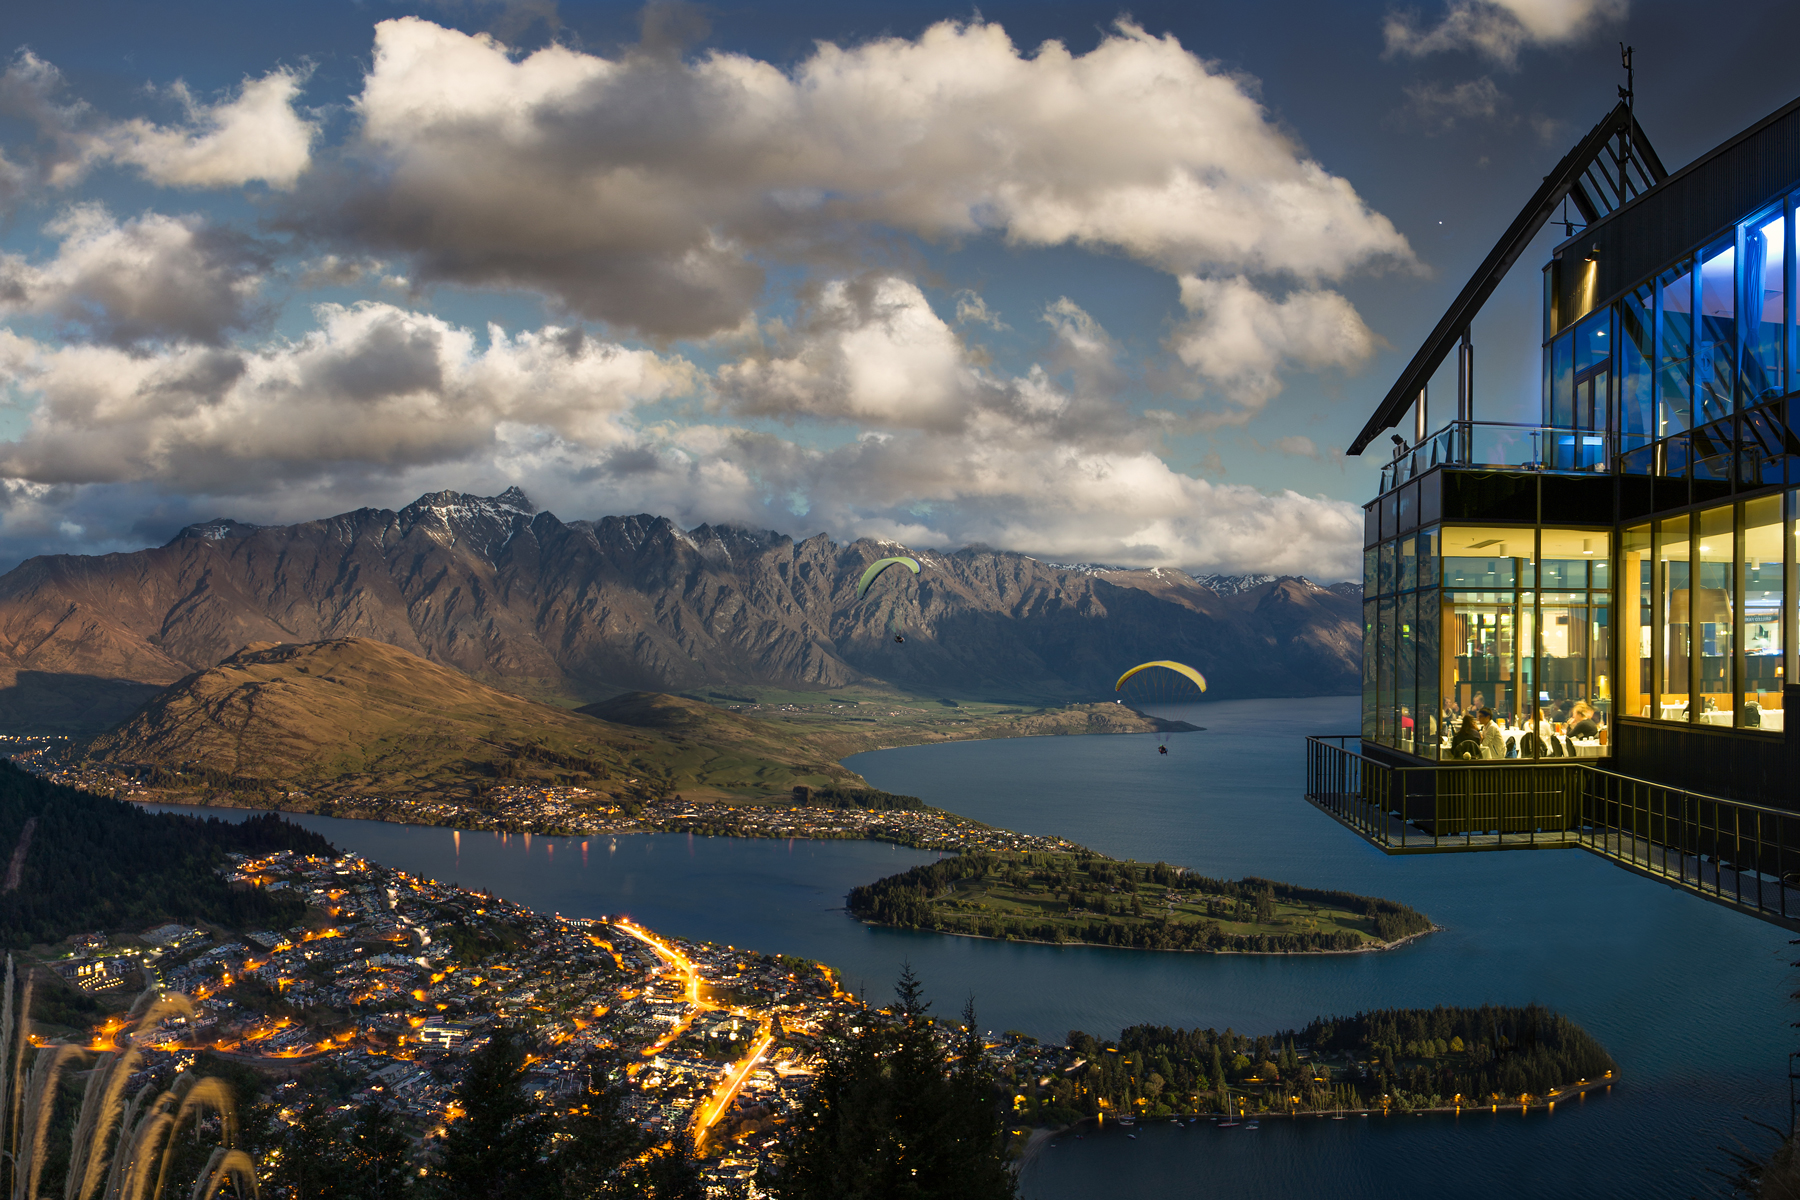 Skyline Gondola Queenstown Background large